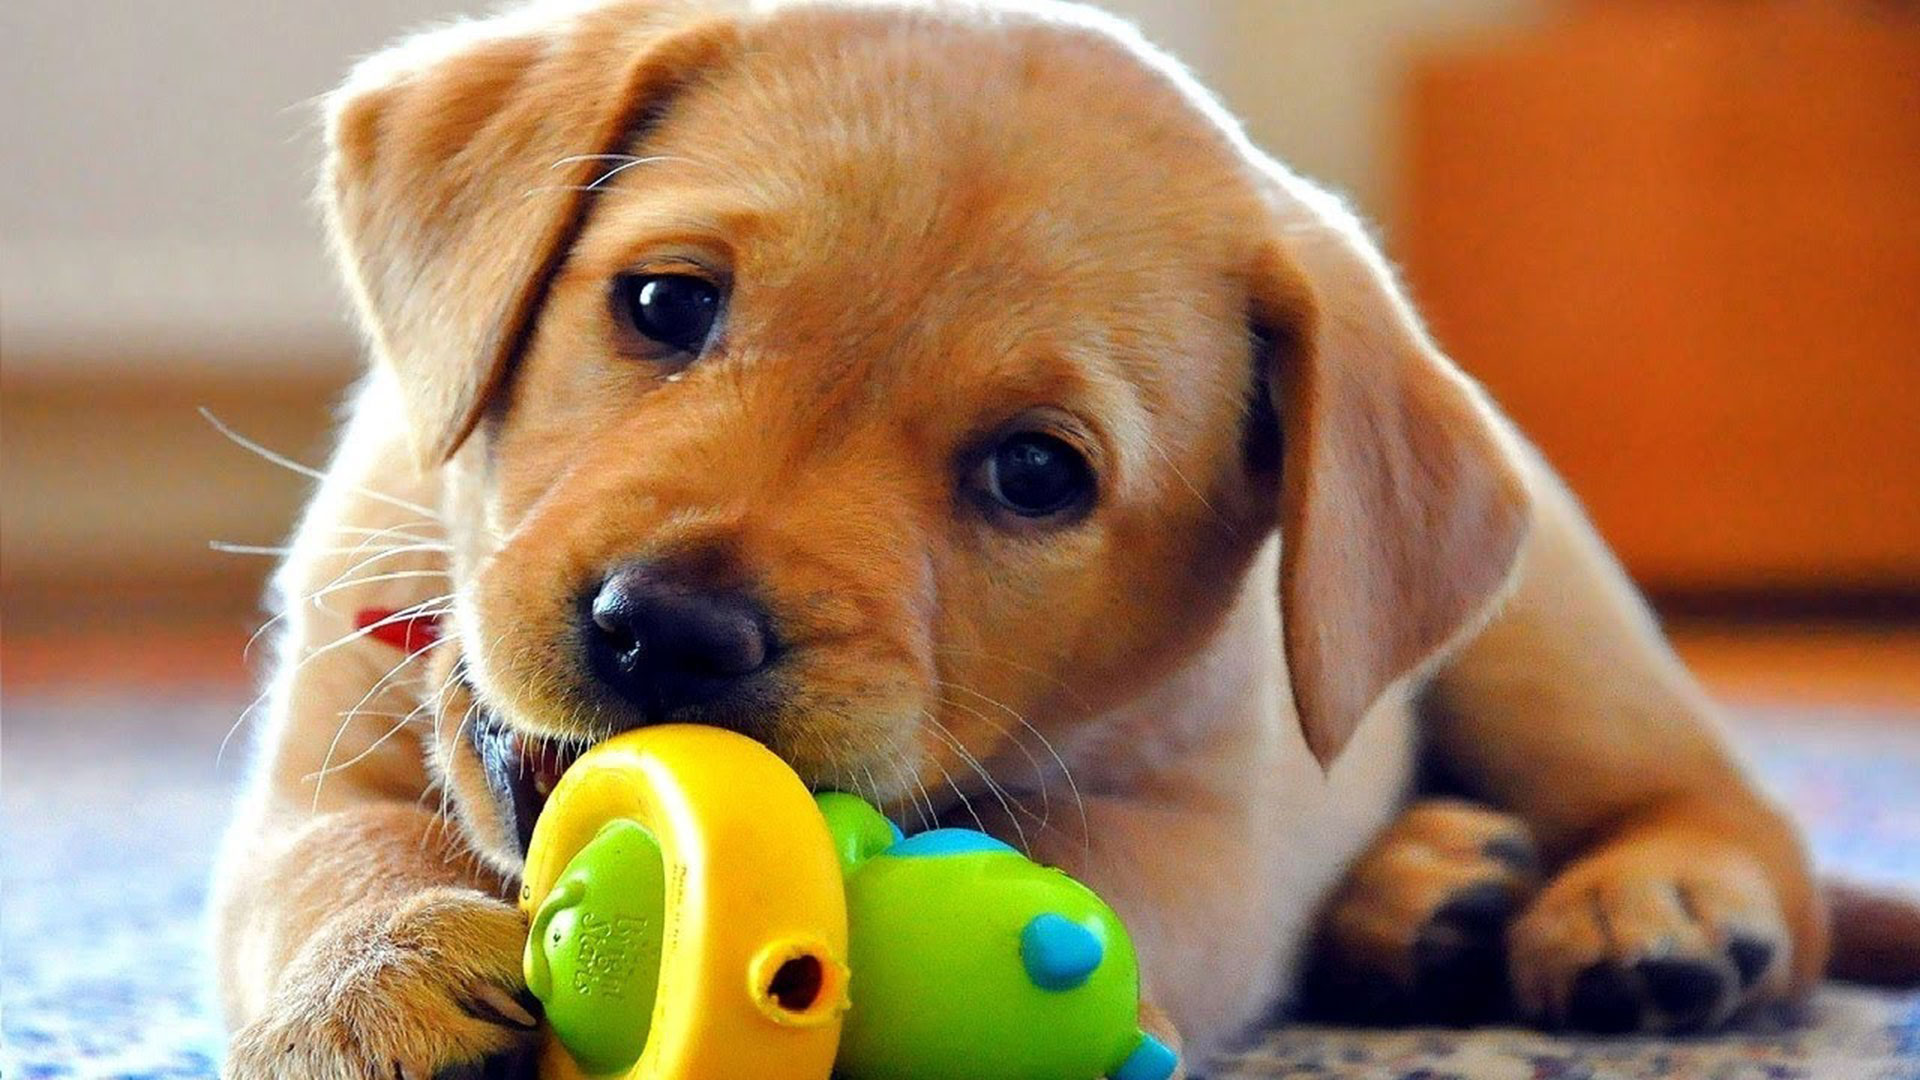 cute-dog-play-with-toy1920x1080-wallpaper-wpc9003921